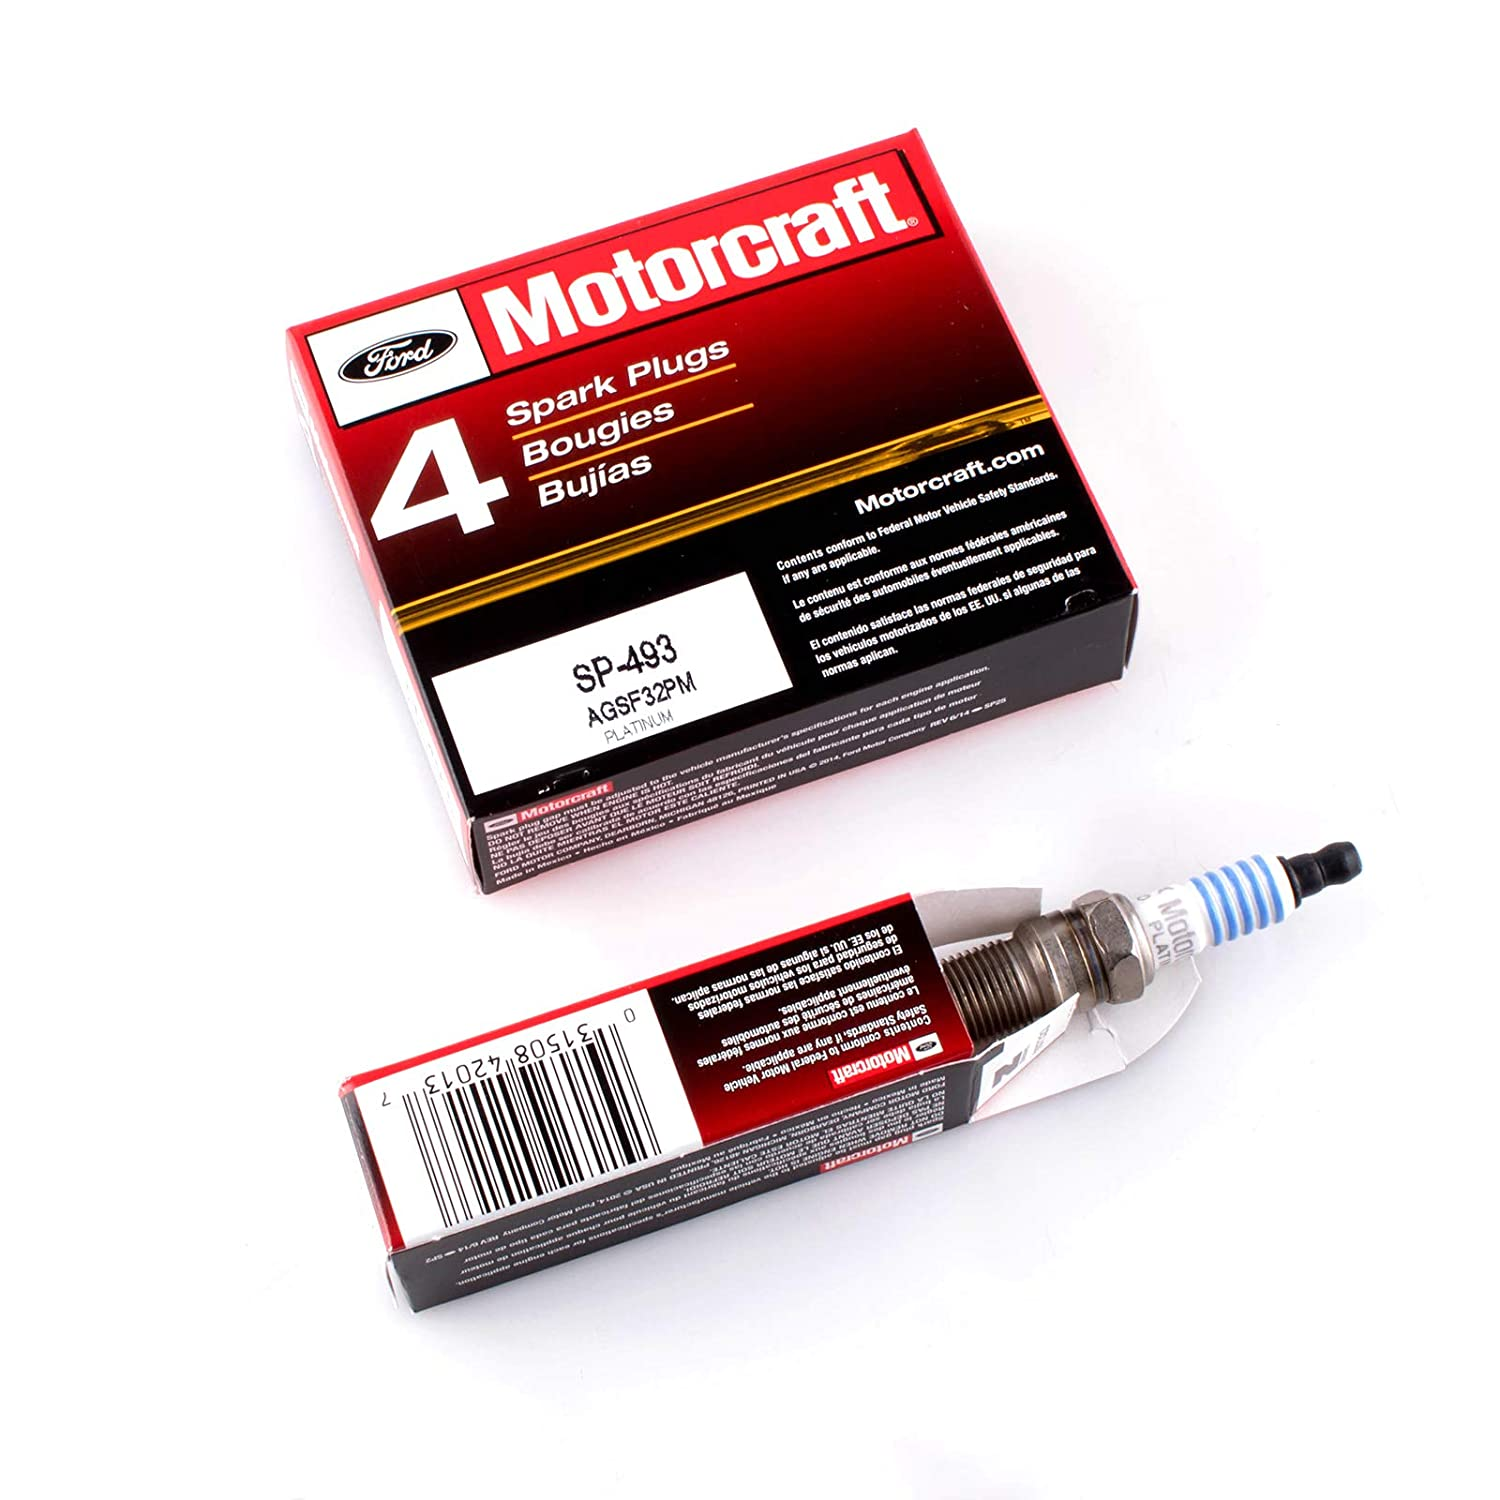 Amazon.com: Motorcraft Spark Plugs SP493 AGSF32PM Platinum and MAS Ignition Coils for Ford Escape Taurus Mazda Tribute Mercury 3.0 V6 DG513 DG500 FD502(pack ...